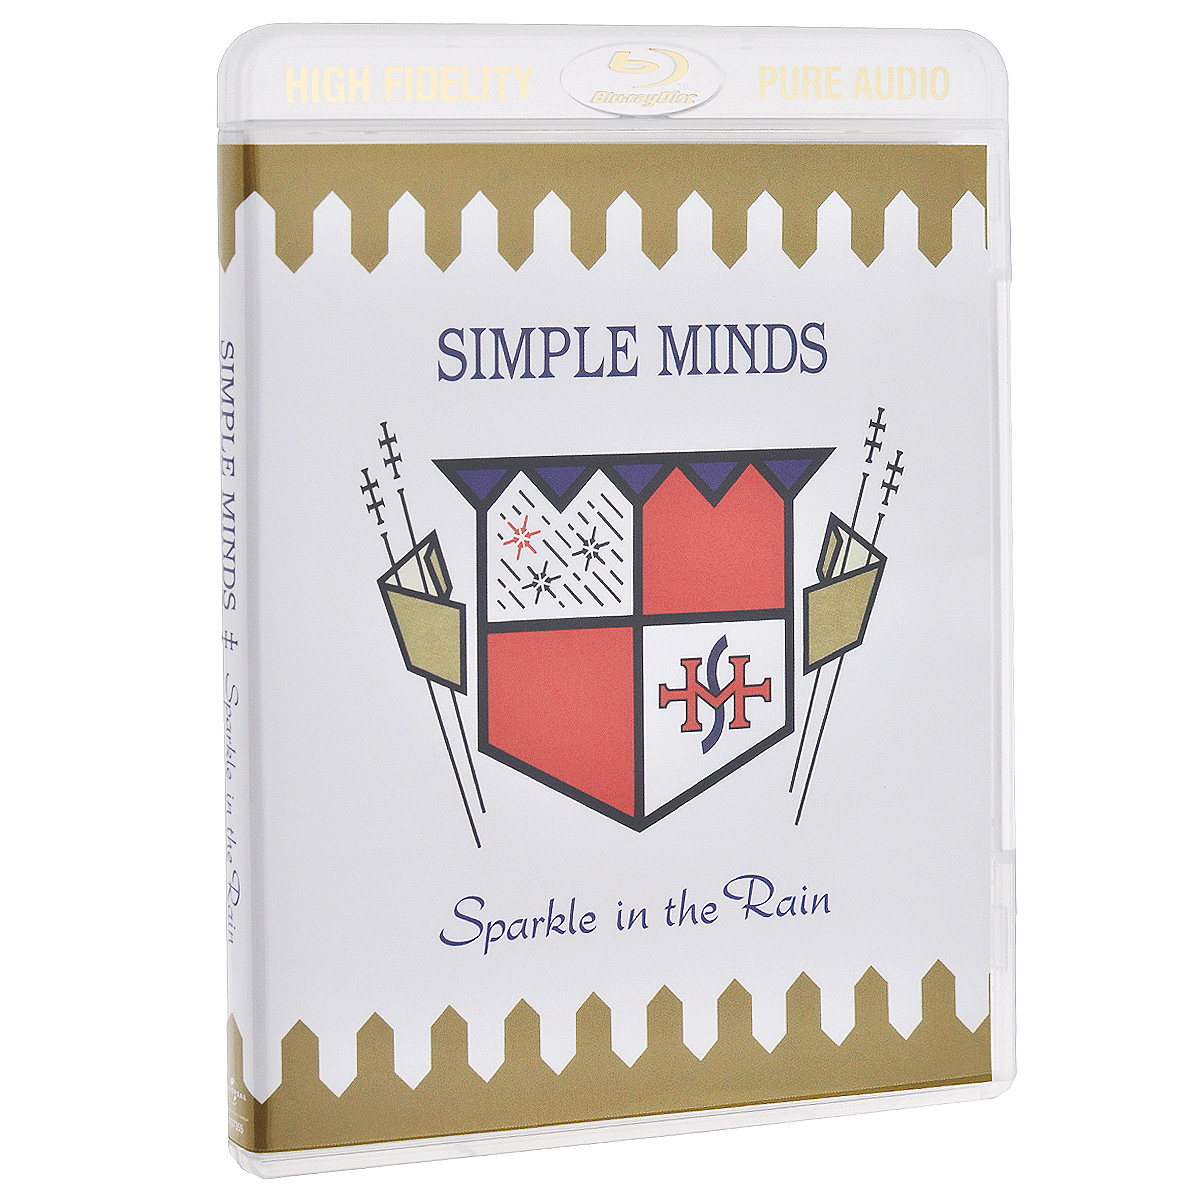 Simple Minds Simple Minds. Sparkle In The Rain (Blu-Ray Audio) simple minds simple minds sparkle in the rain 4 cd dvd